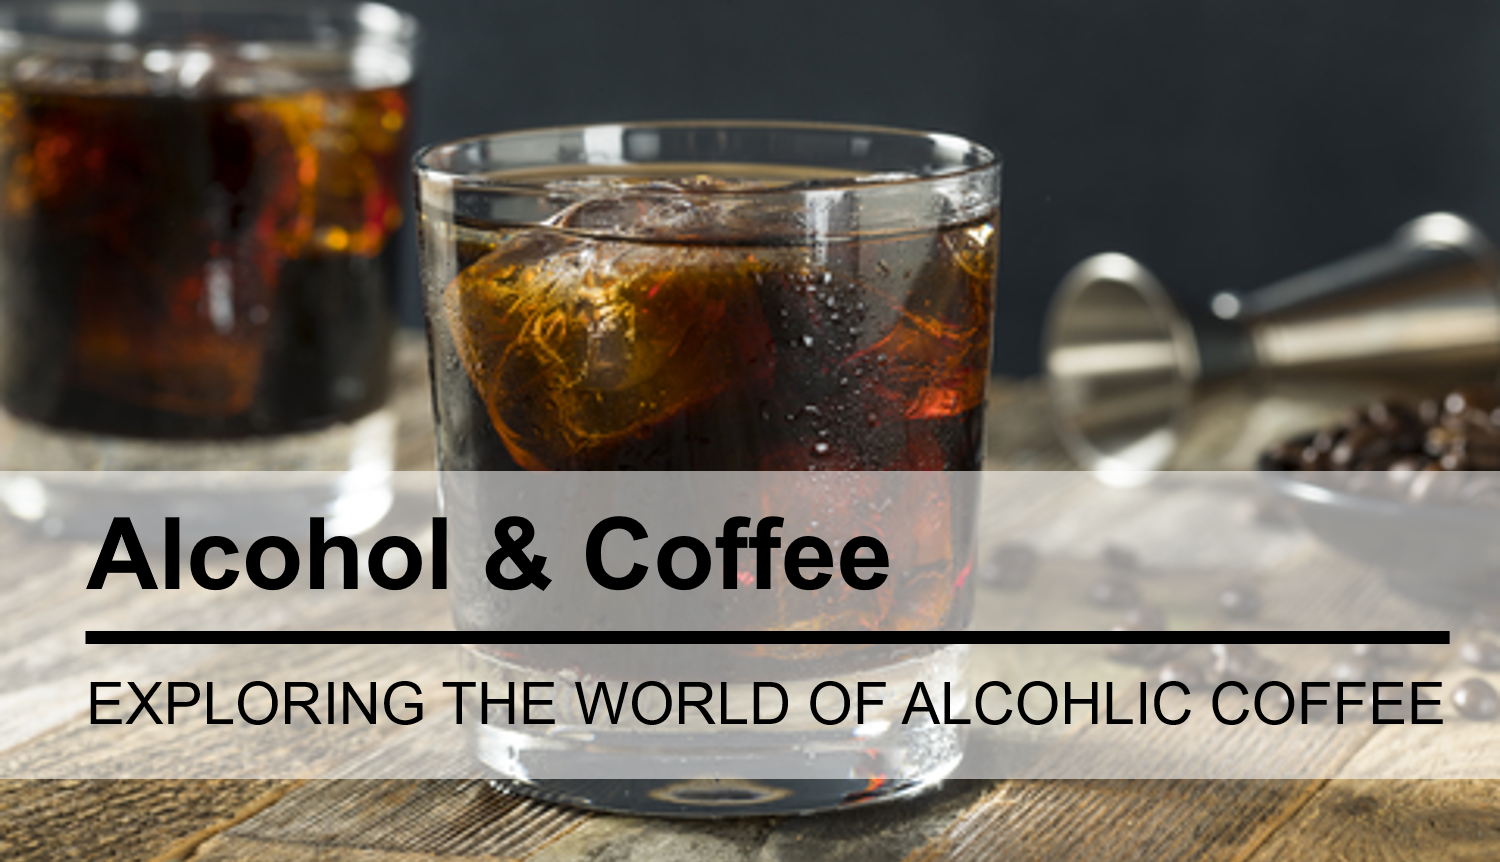 What's happening in the world of Alcoholic Coffee